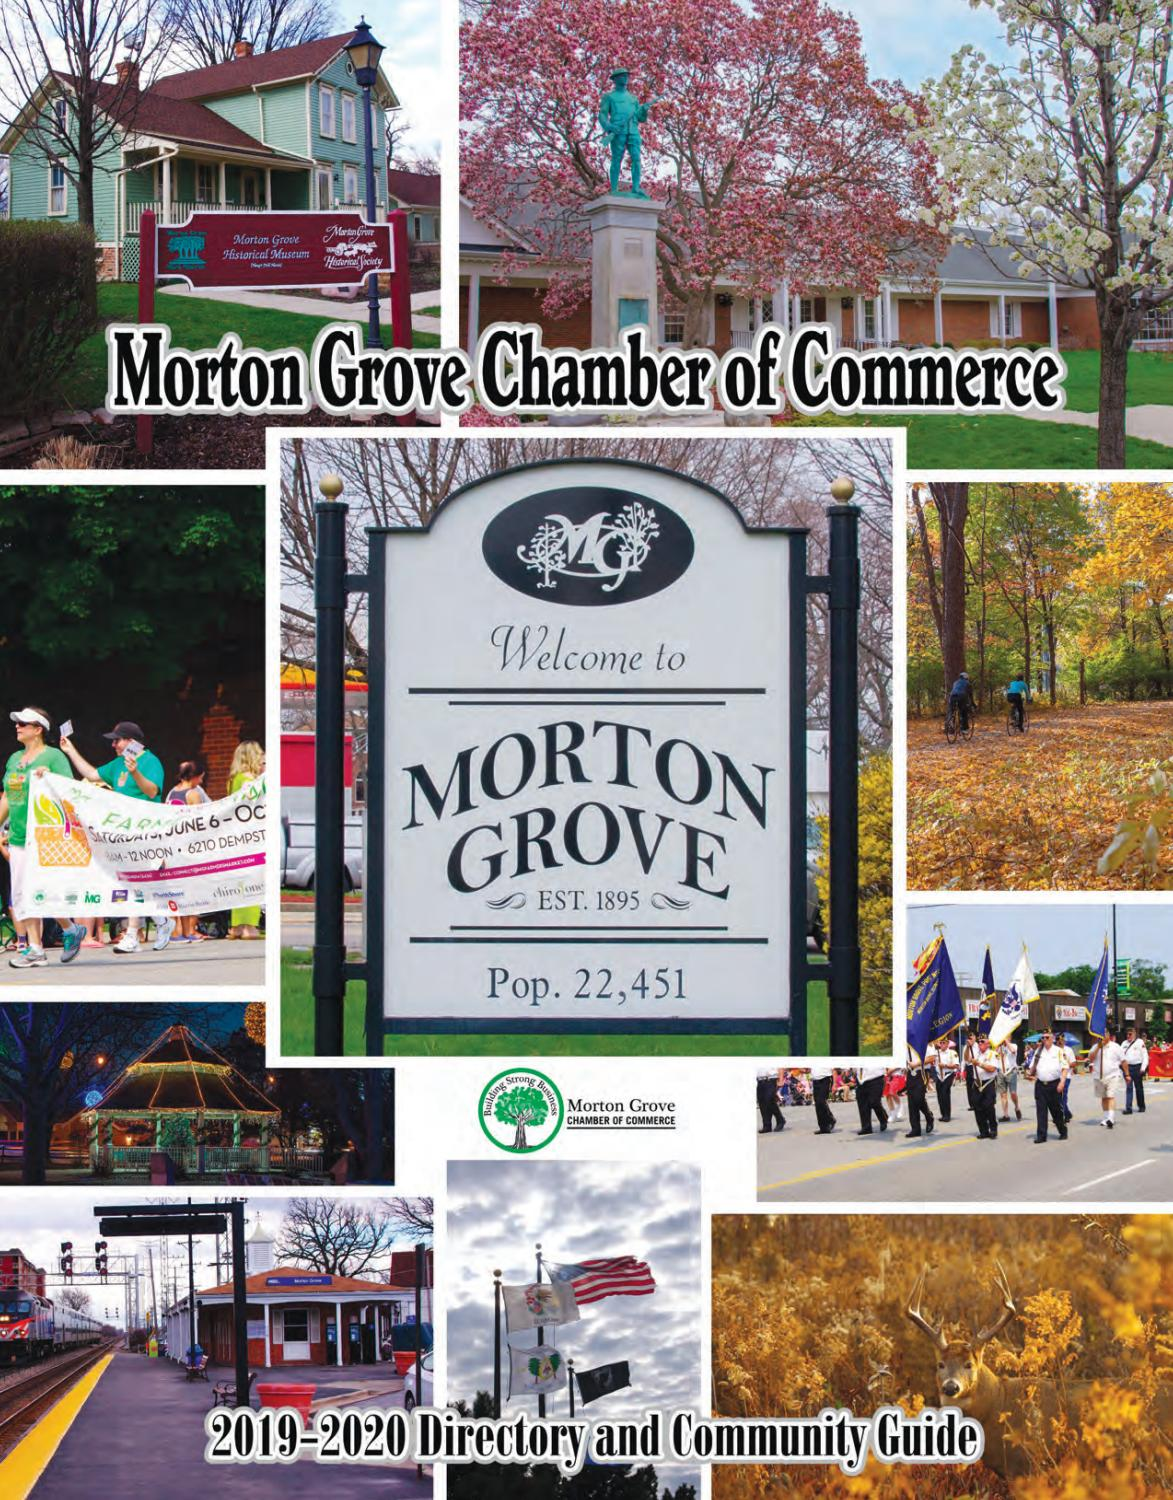 Morton Grove Il Community Profile By Town Square Publications Llc Issuu Apart from that, the candidates can also avail. morton grove il community profile by